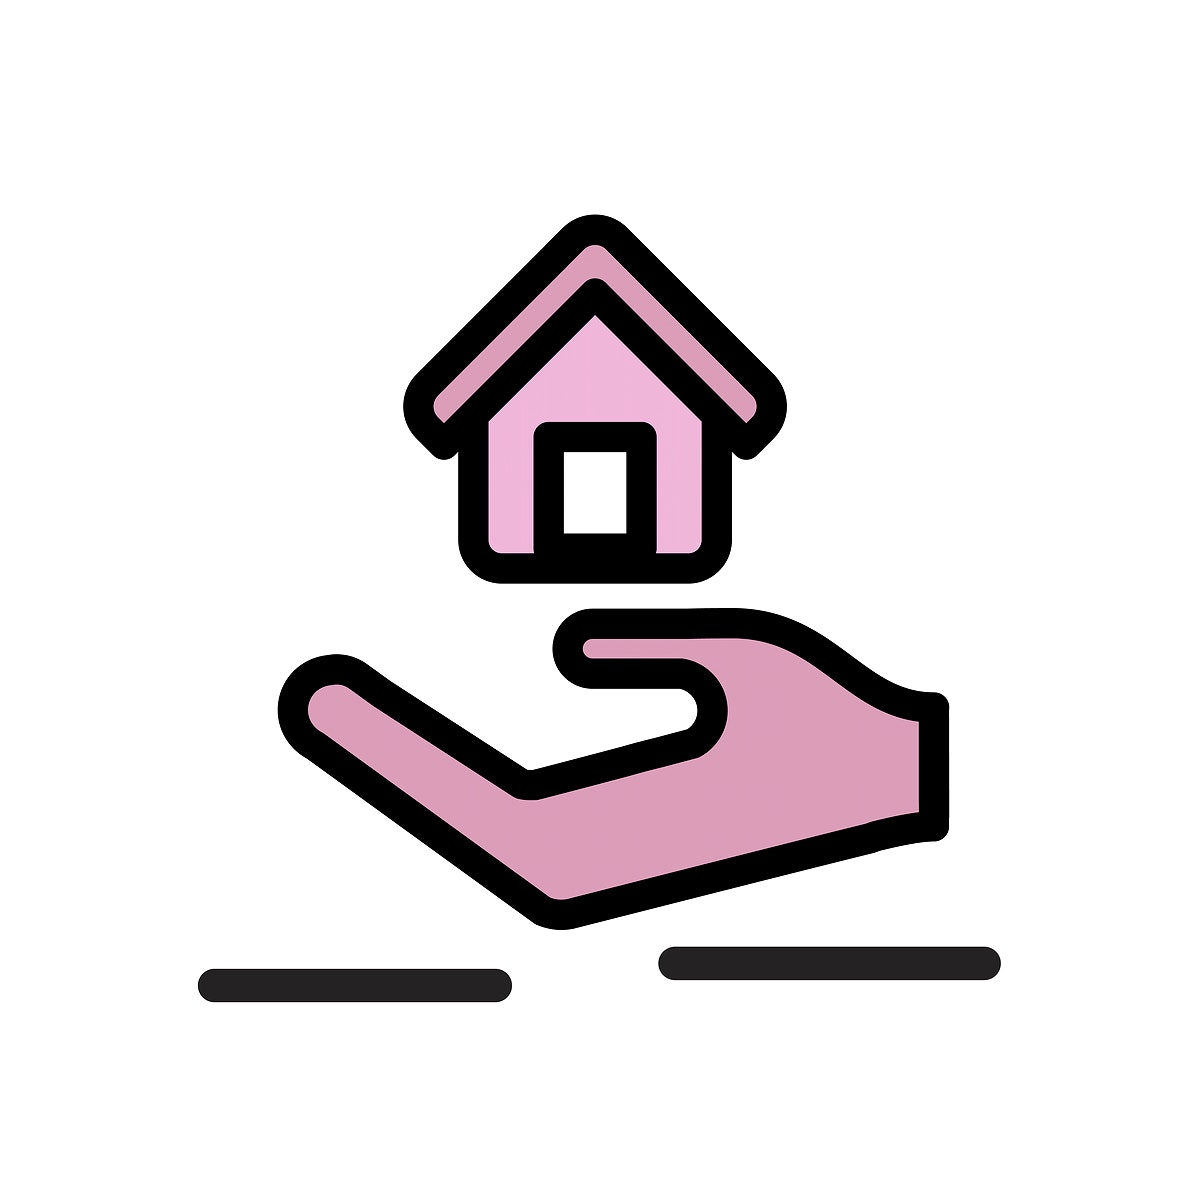 Illustration of hand under the house for real estate icon